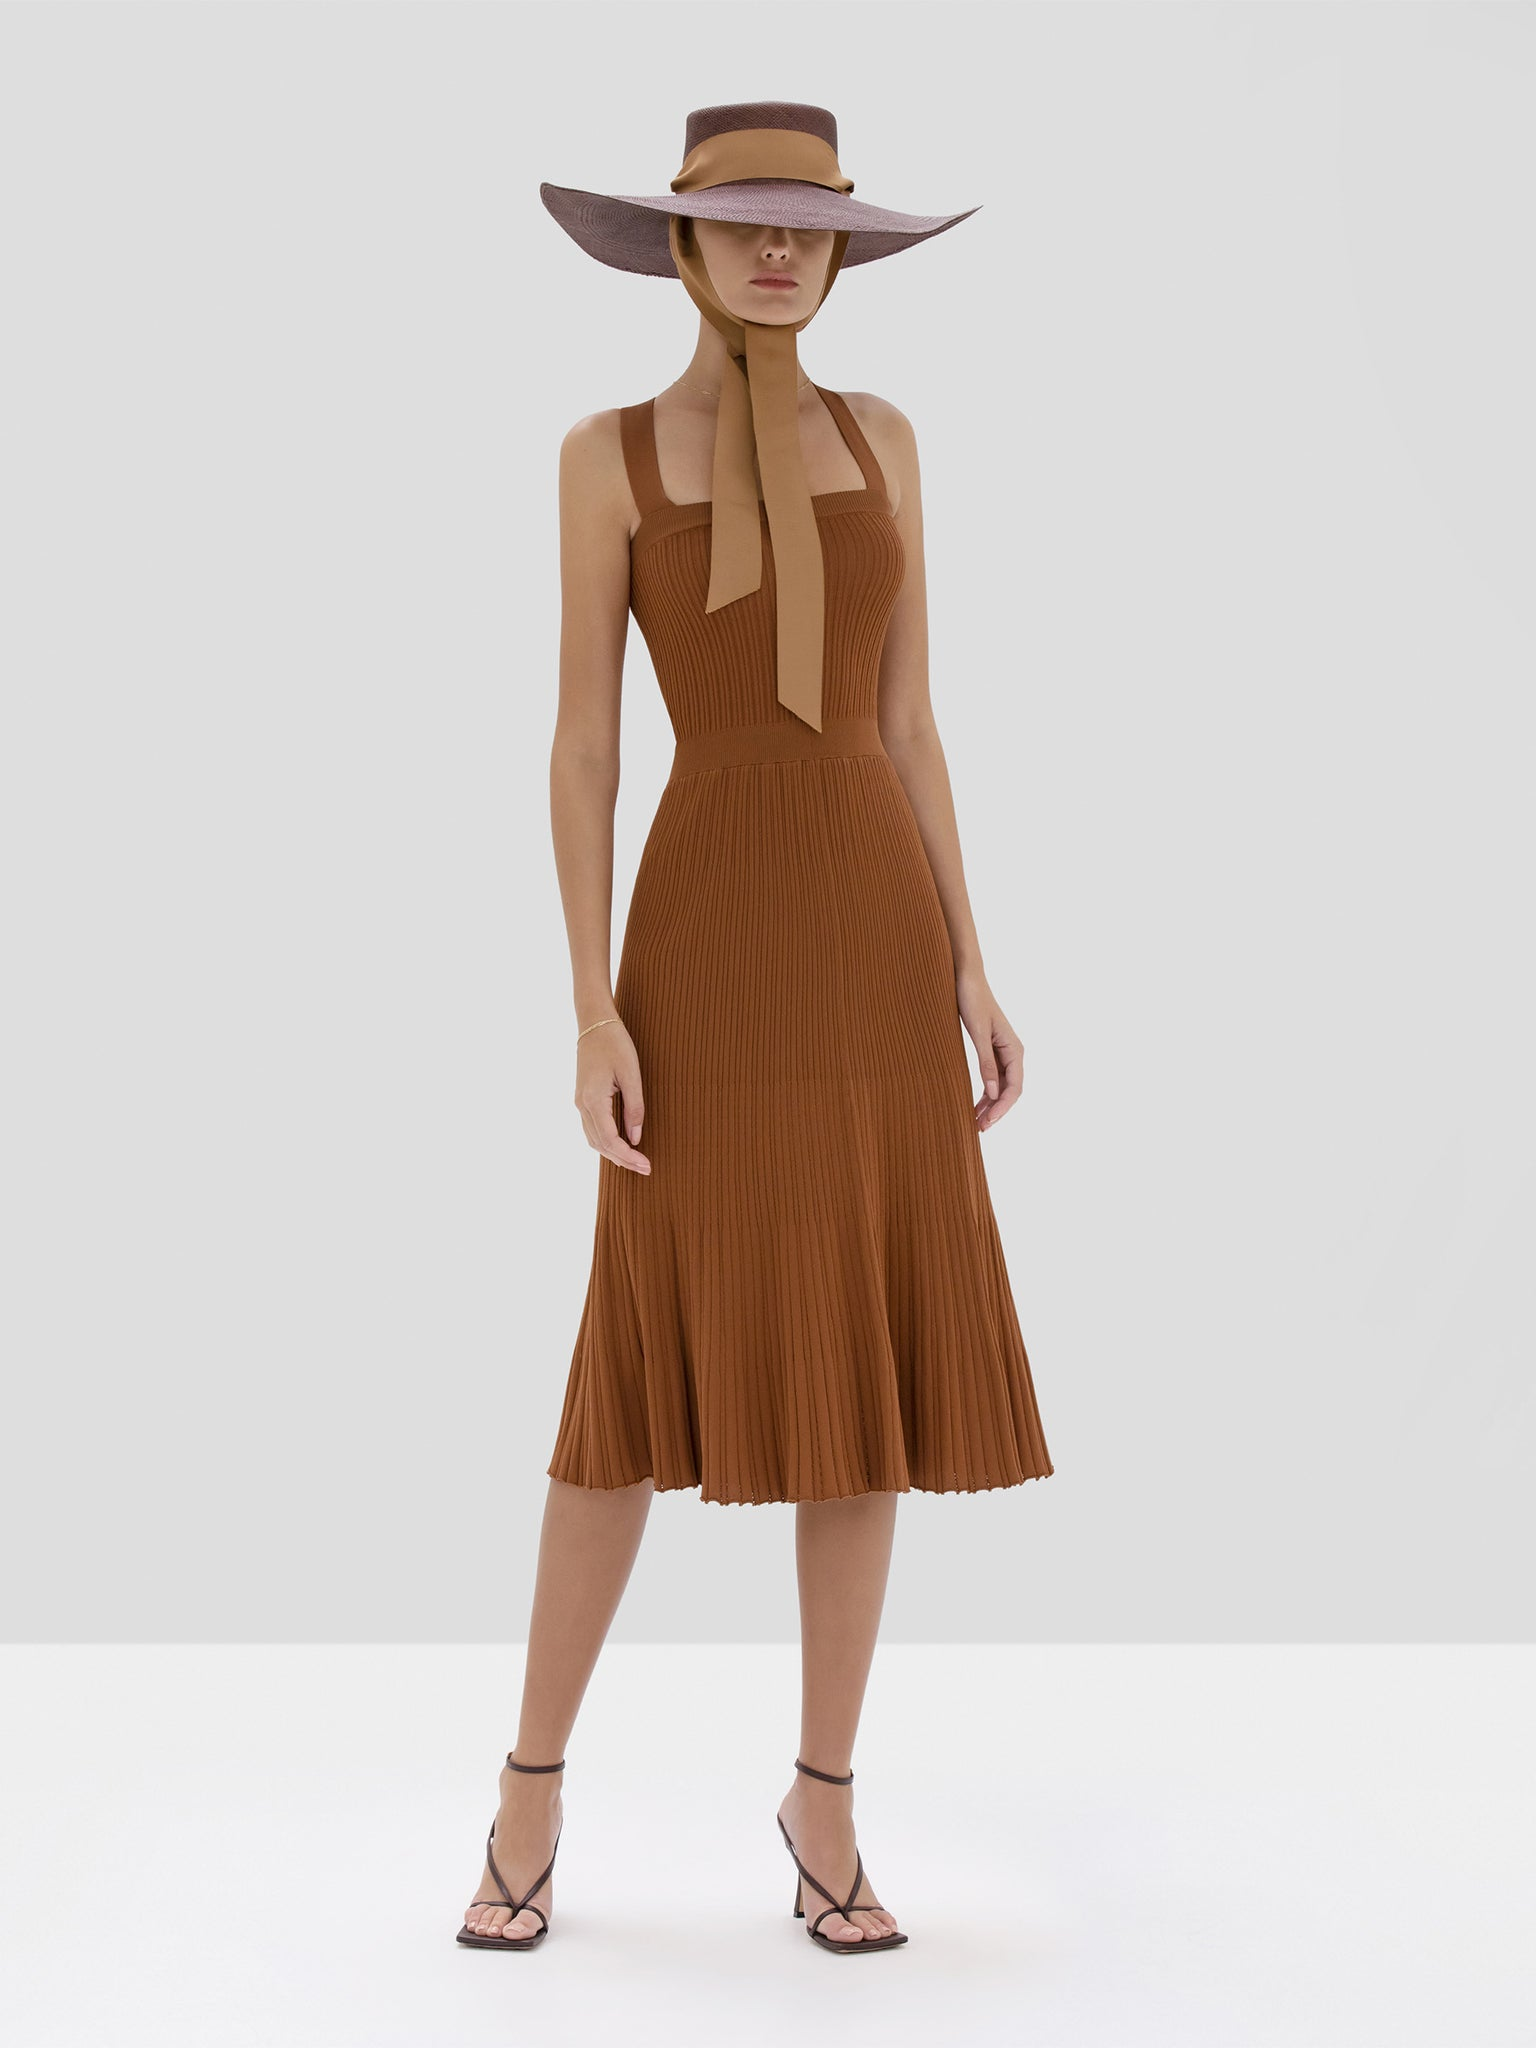 Alexis Bess Dress in Rust from the Spring Summer 2020 Collection